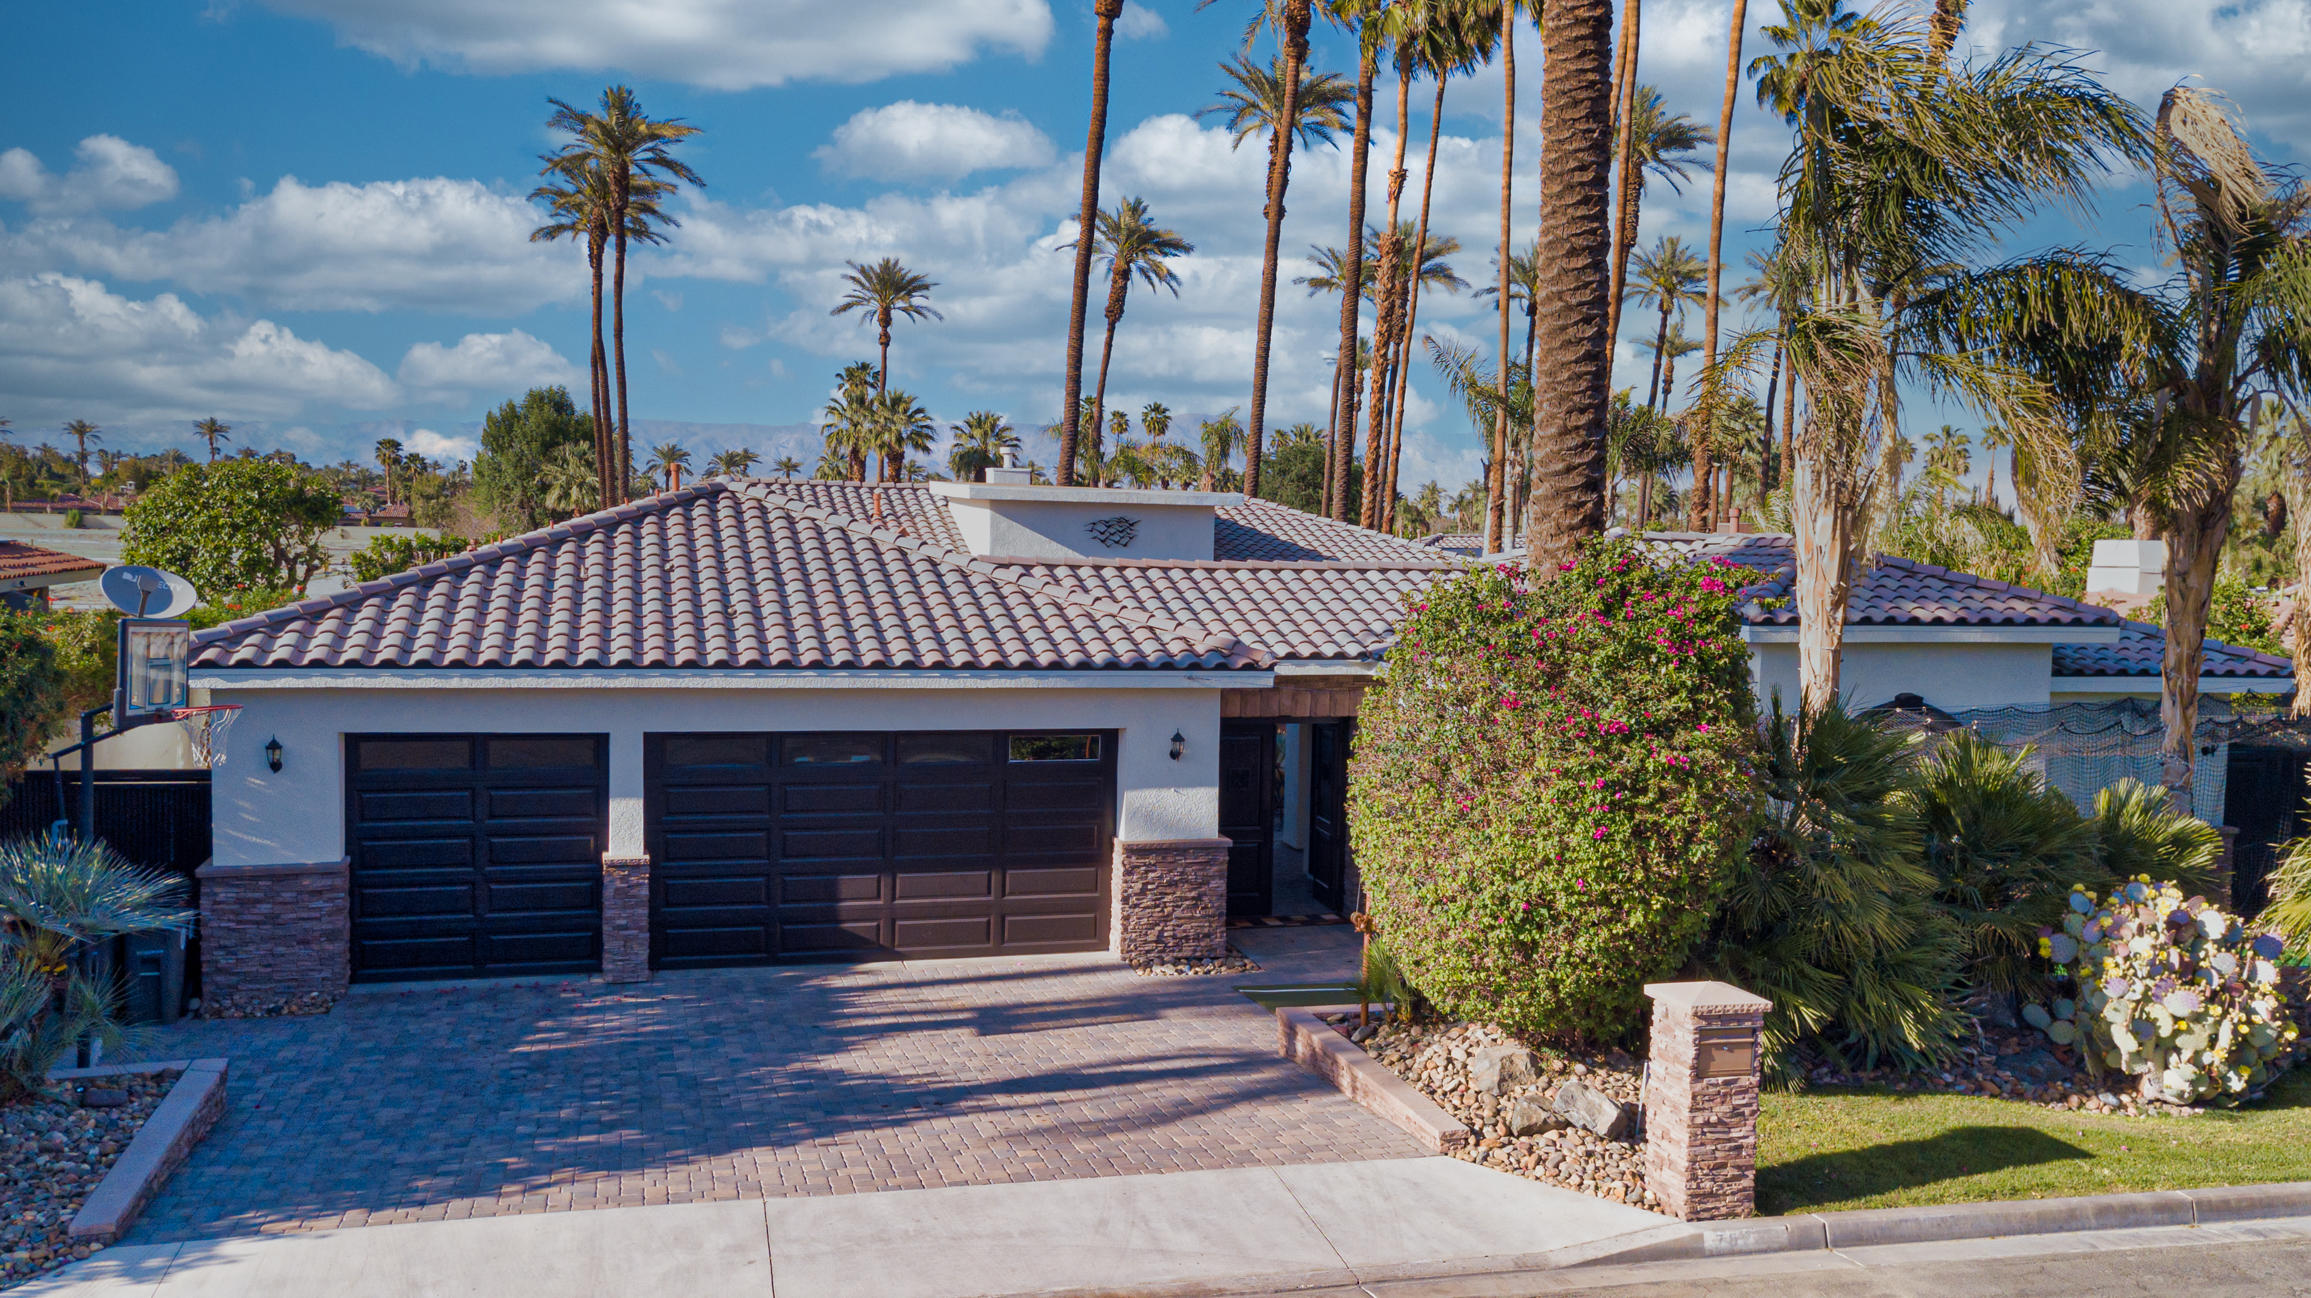 Amazing bright and open Indian Wells home with no HOA. $ bedrooms and 3 baths in the main house and 1 bath in Casita.  Entertainers dream. Inside and out. Built in BBQ and tv's will keep you outside enjoying the evenings.